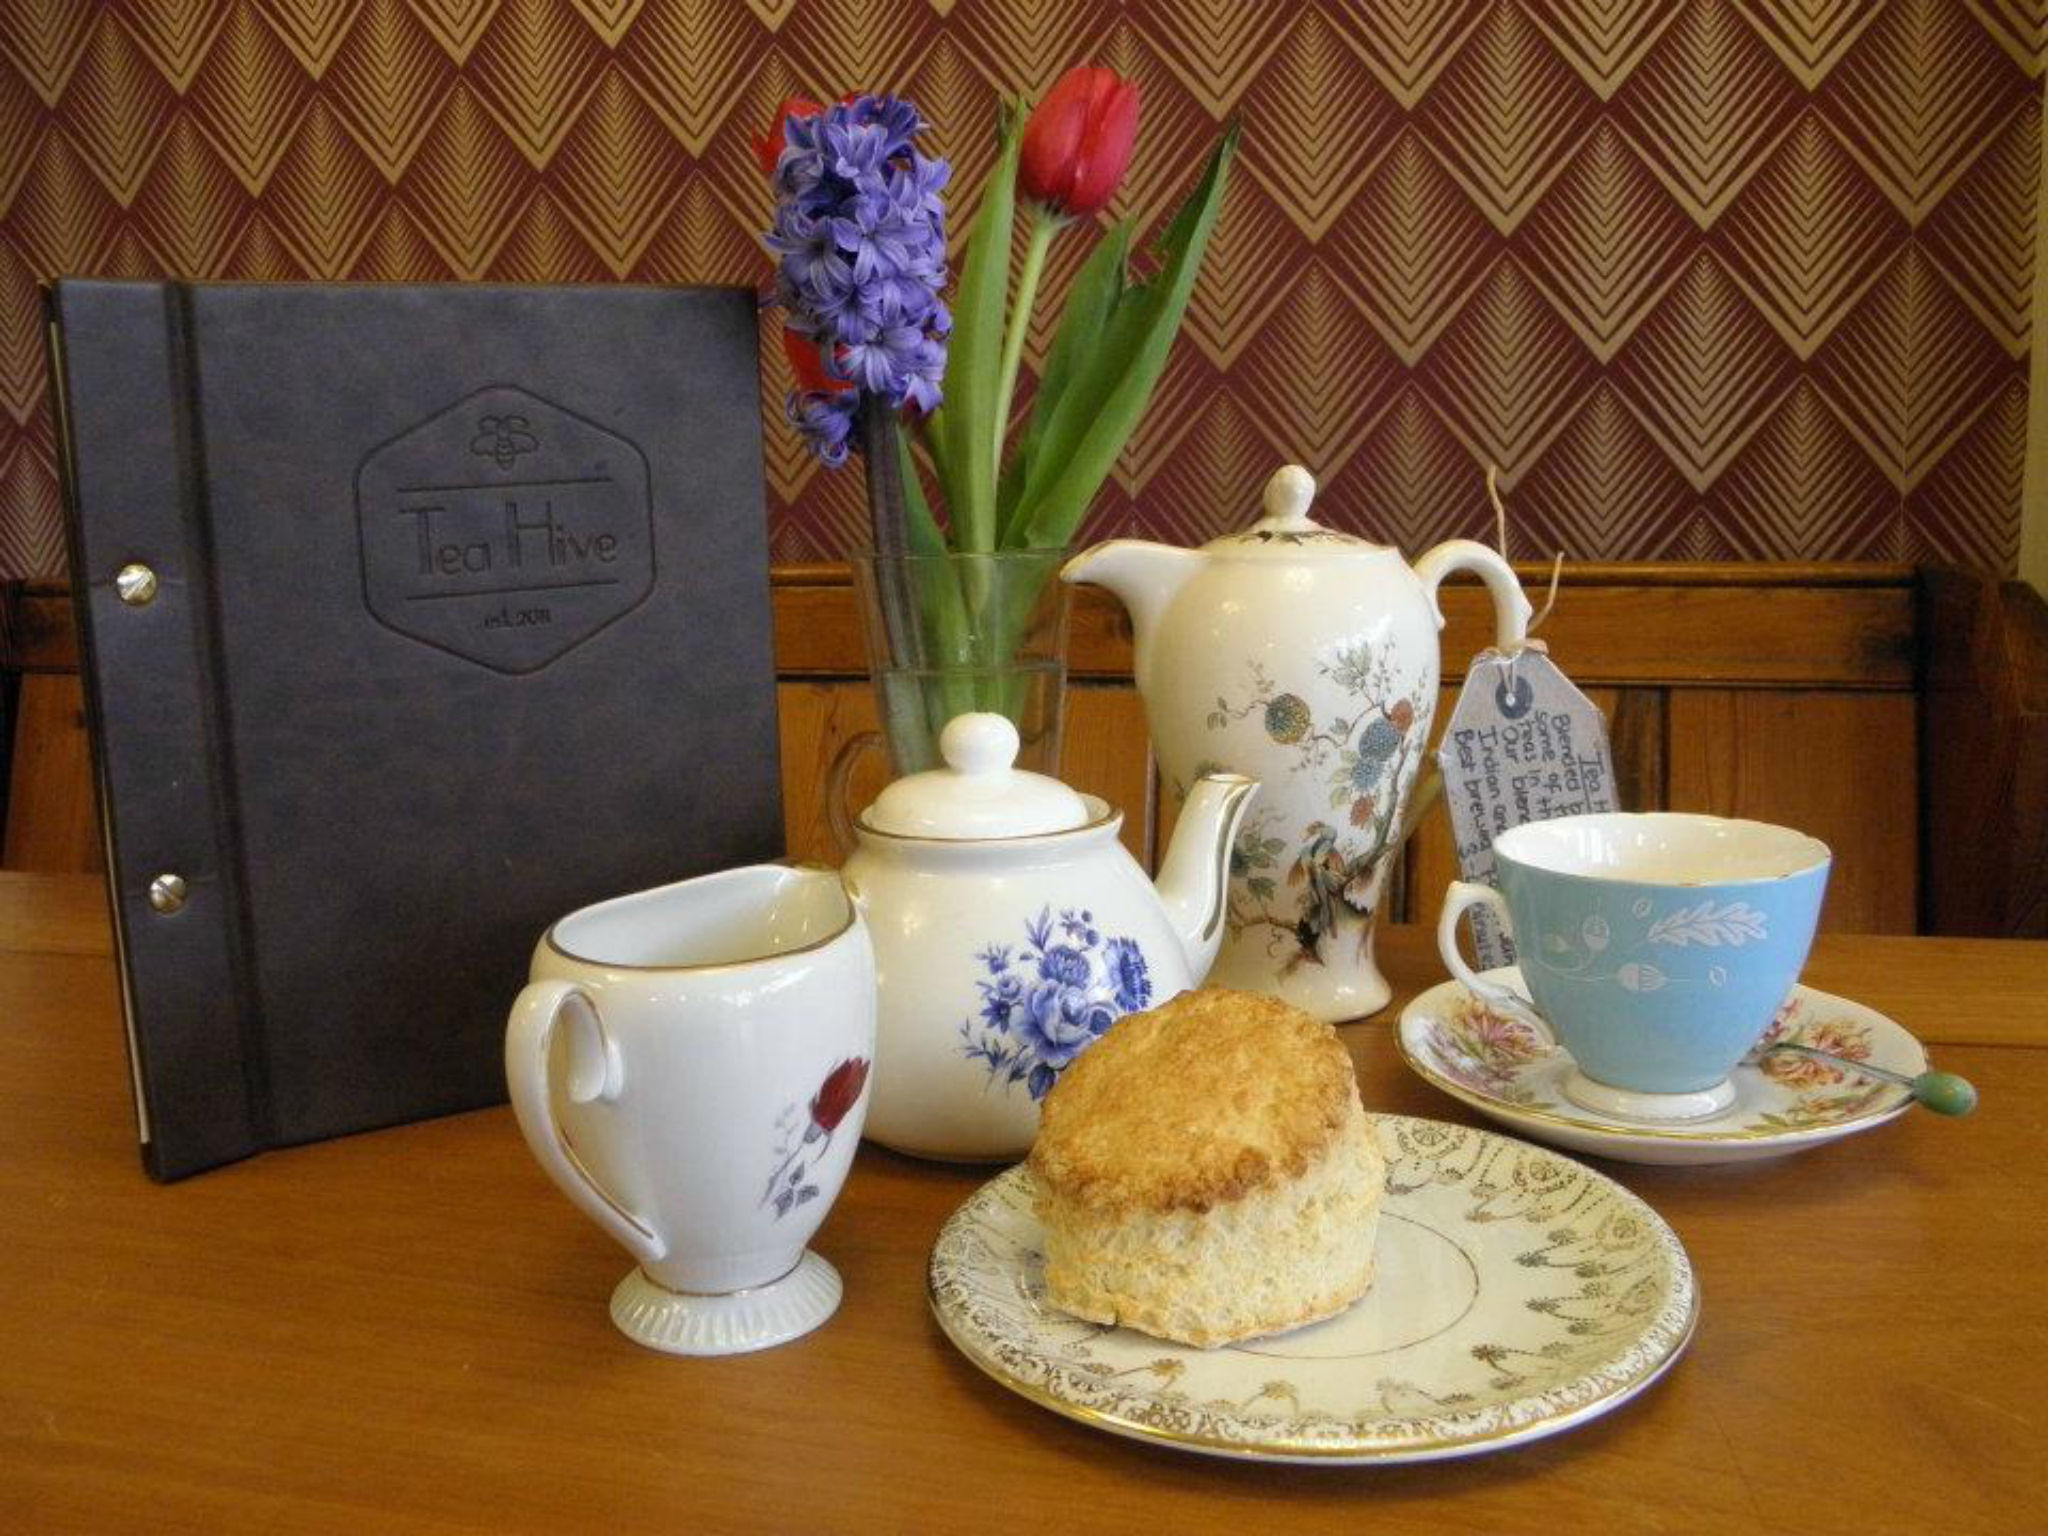 Cream tea at Tea Hive